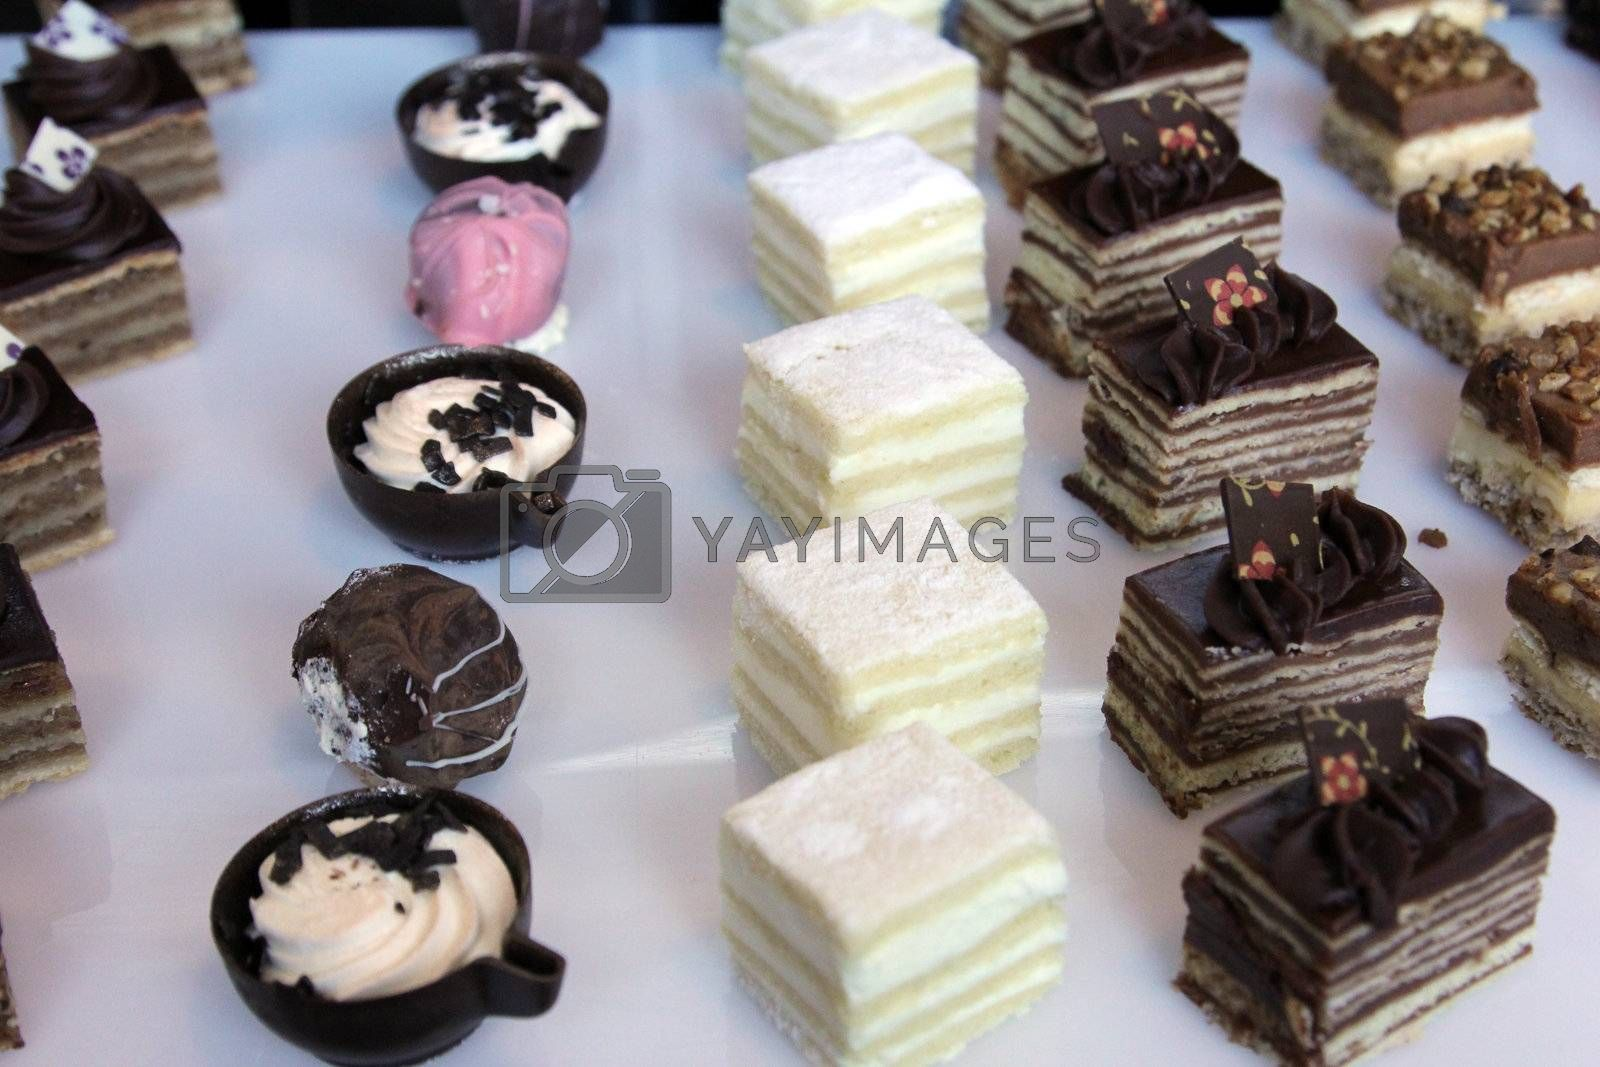 Colorful desserts and pastry served on a wedding party